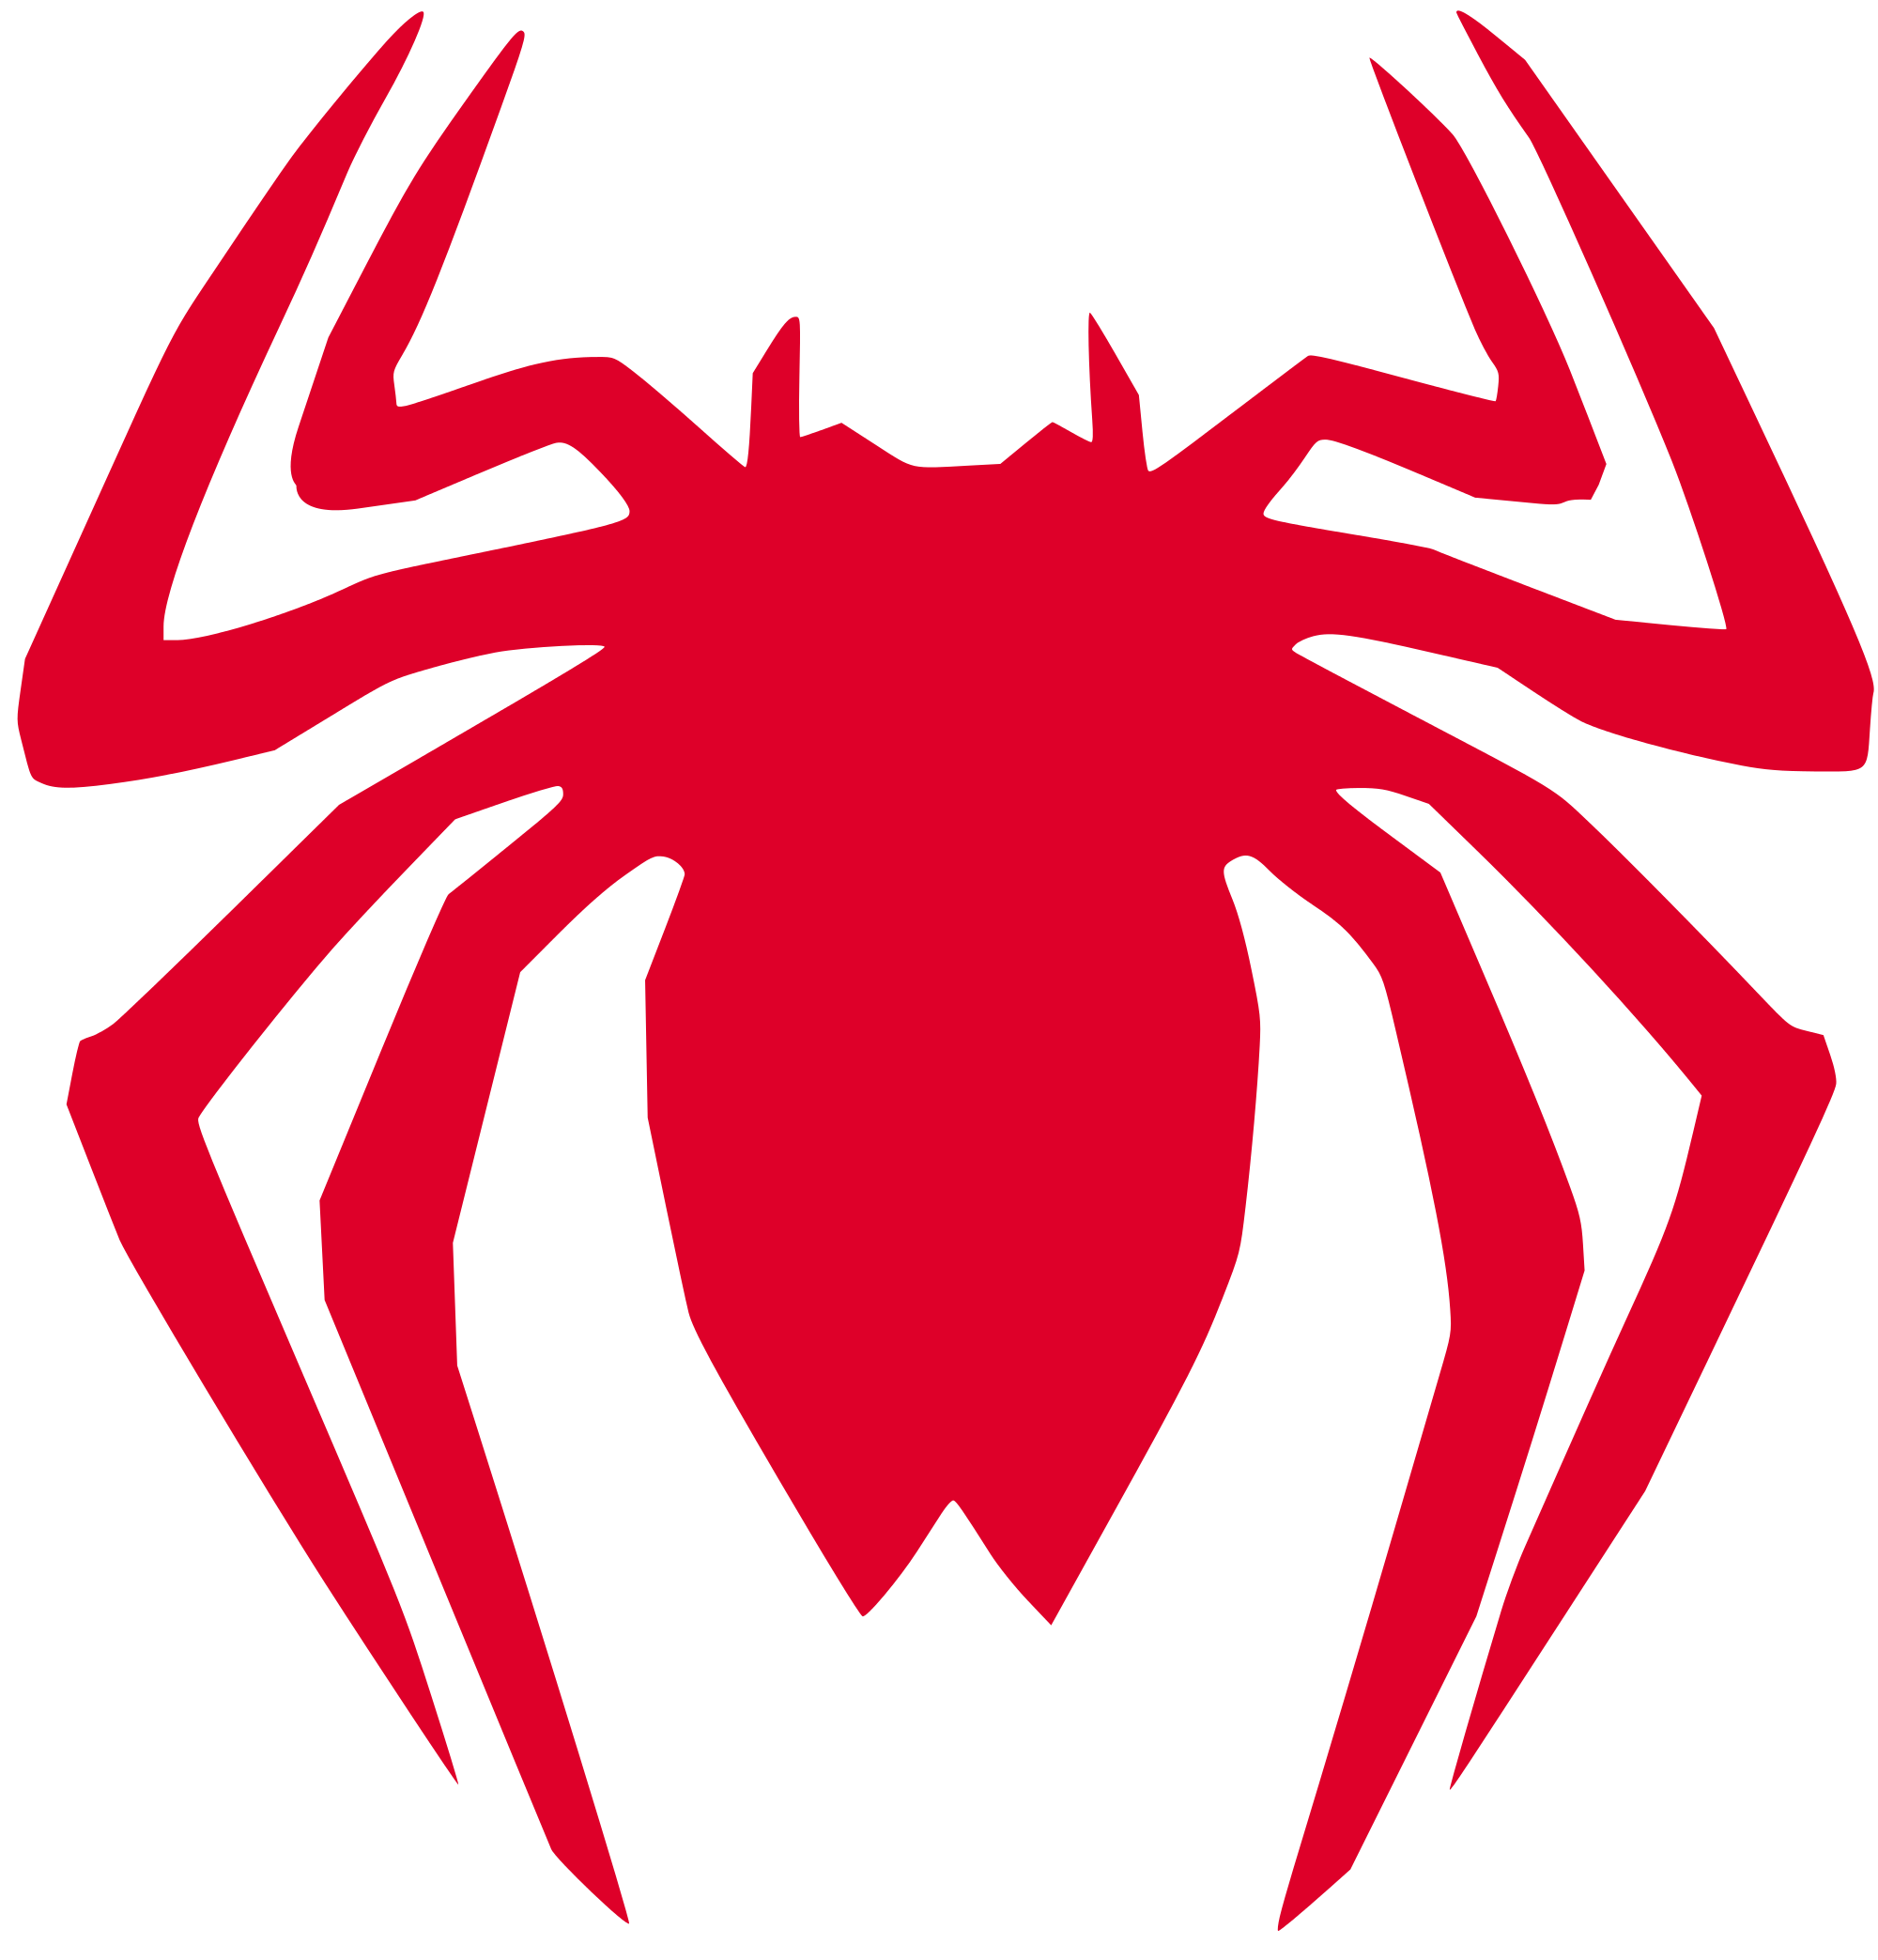 Crab Spider svg #1, Download drawings